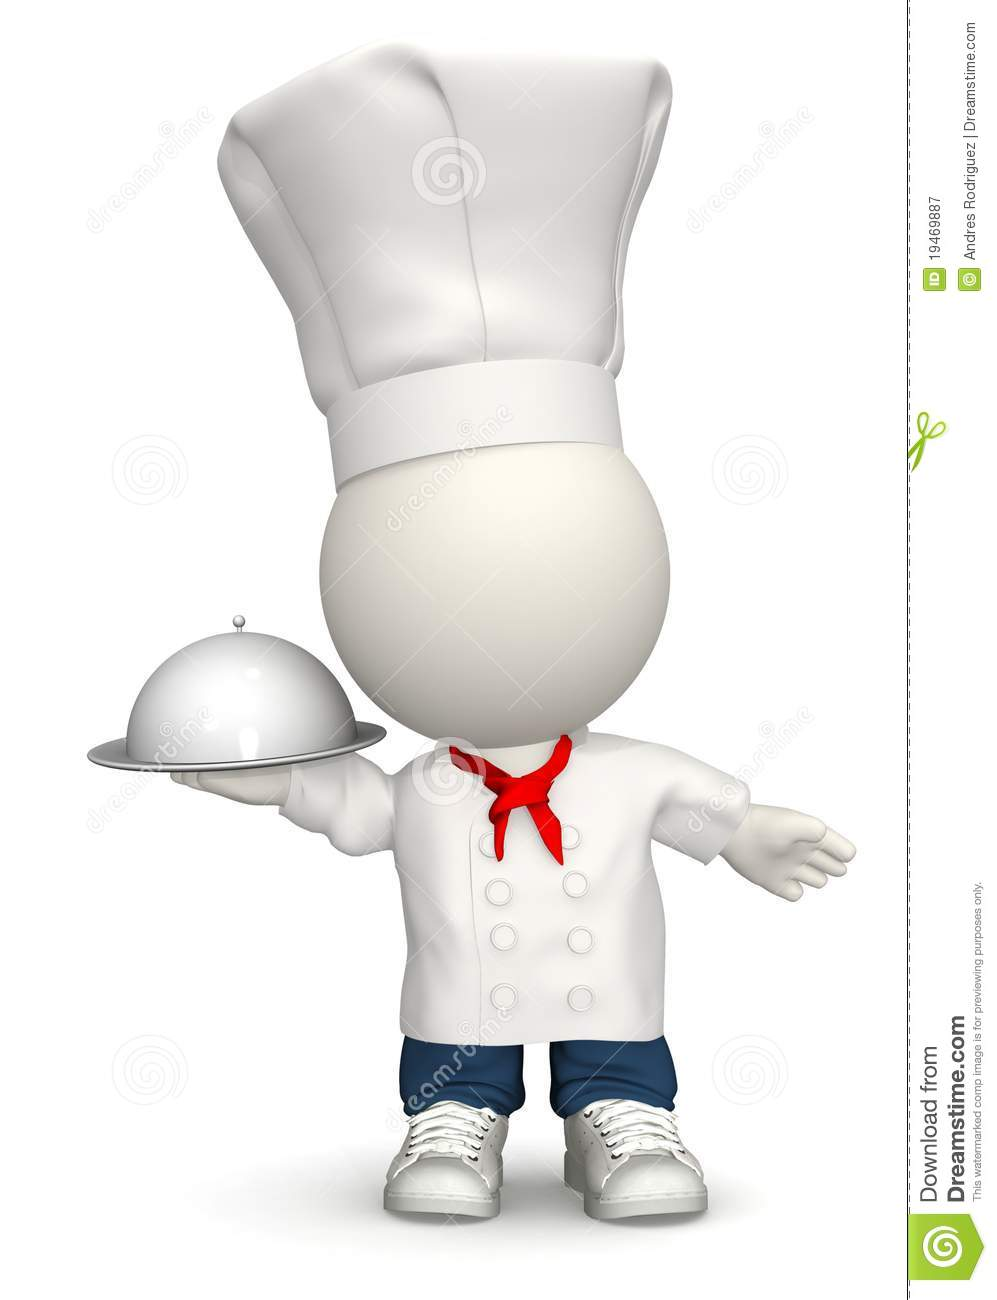 how to get a job as a chef